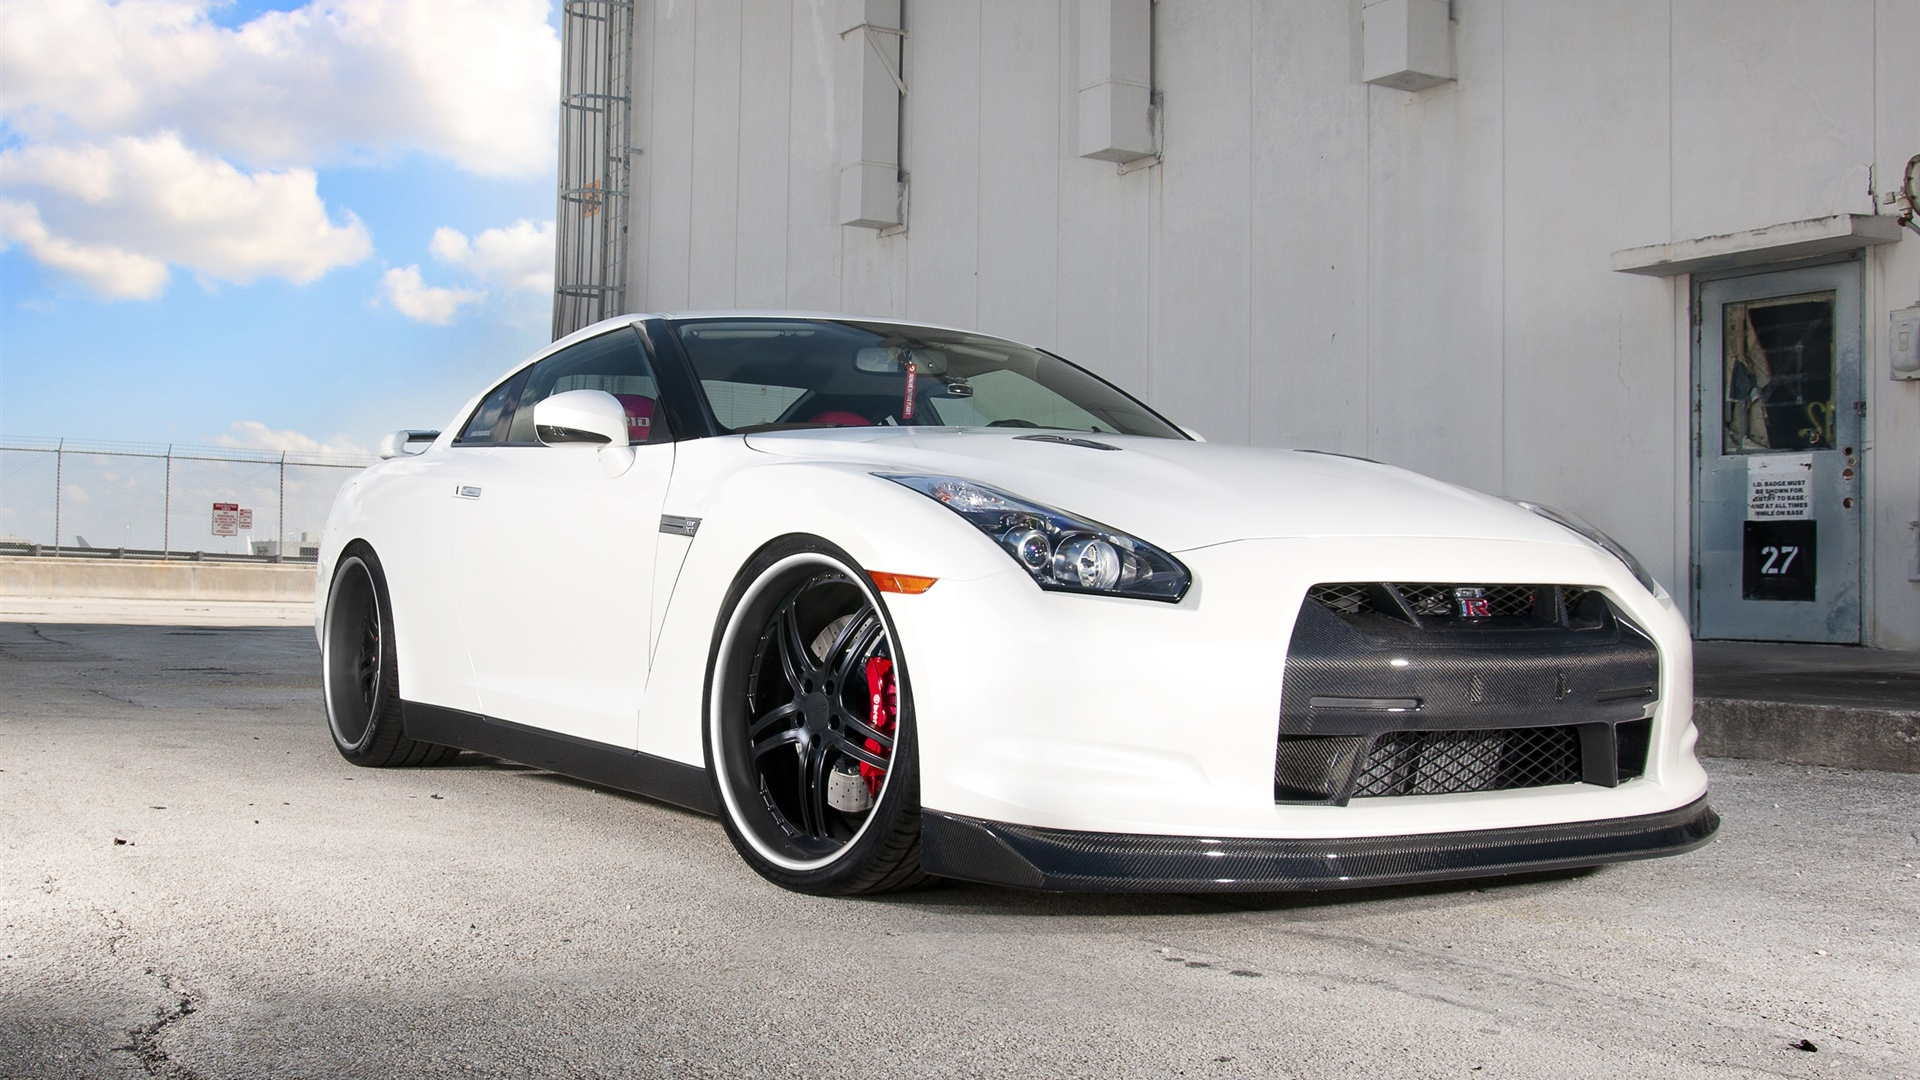 Nissan GTR R35 White Car   High Definition Wallpapers   HD wallpapers 1920x1080